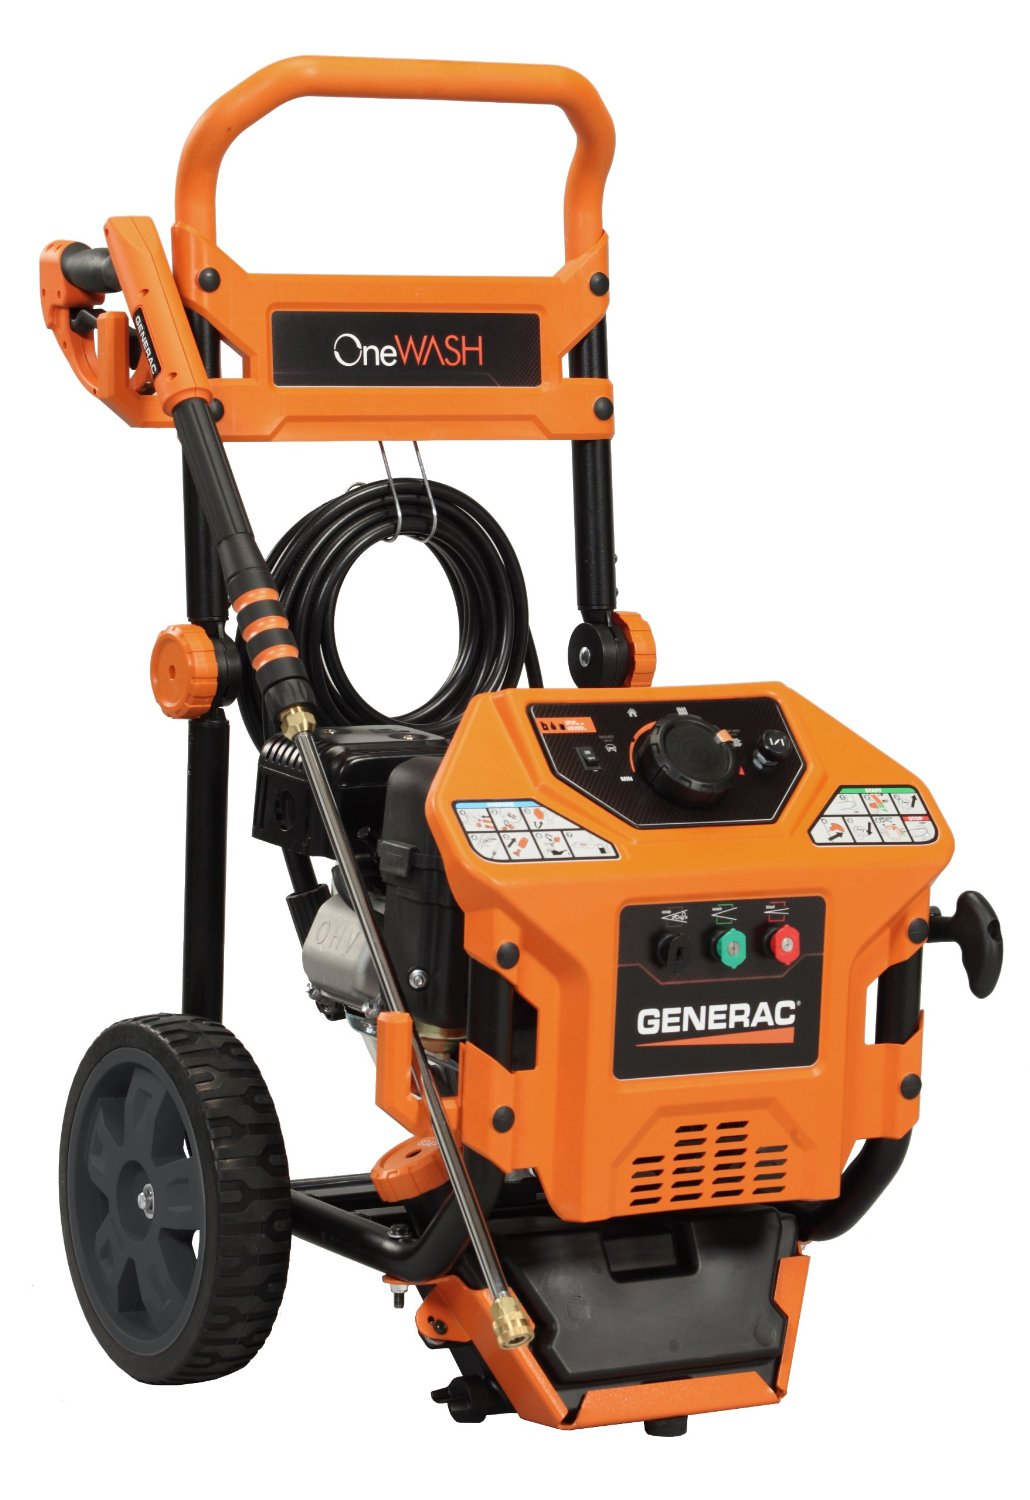 Generac Onewash Review